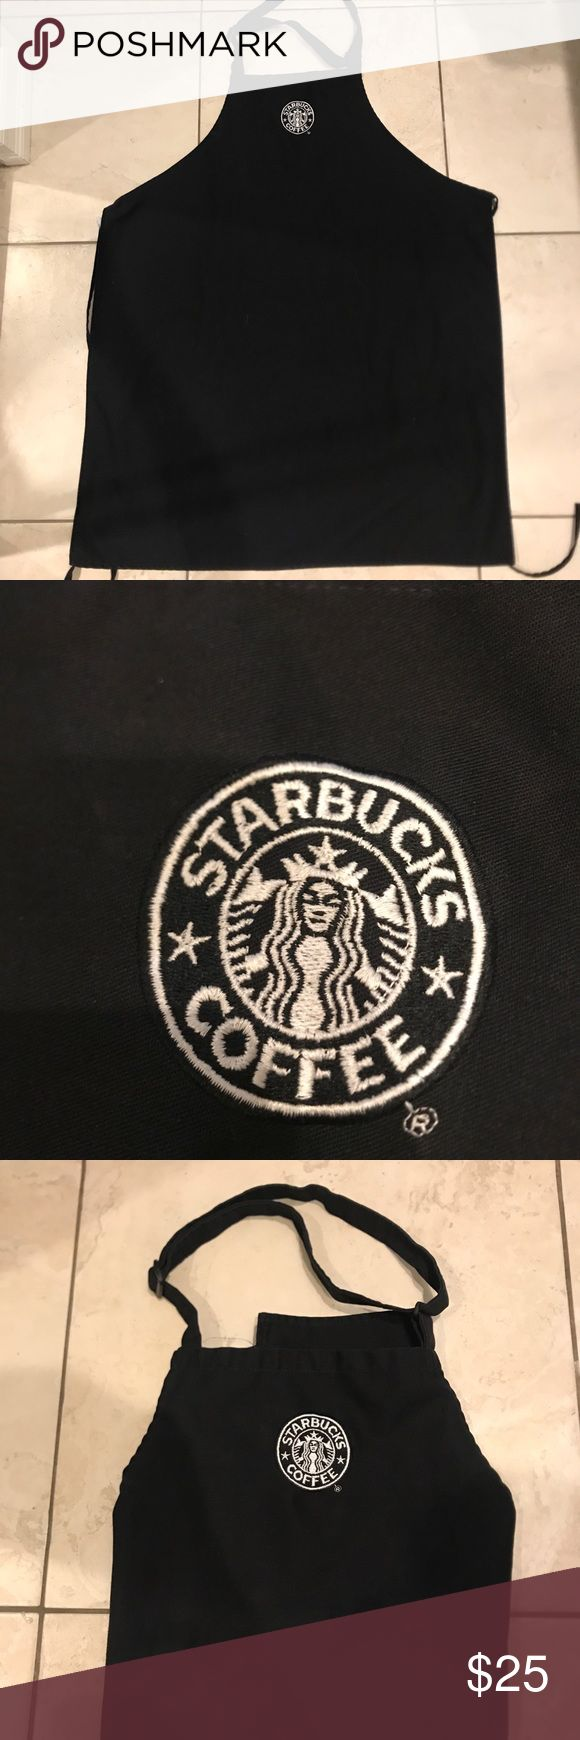 Starbucks apron Authentic Starbucks apron great condition. Great for a costume Accessories